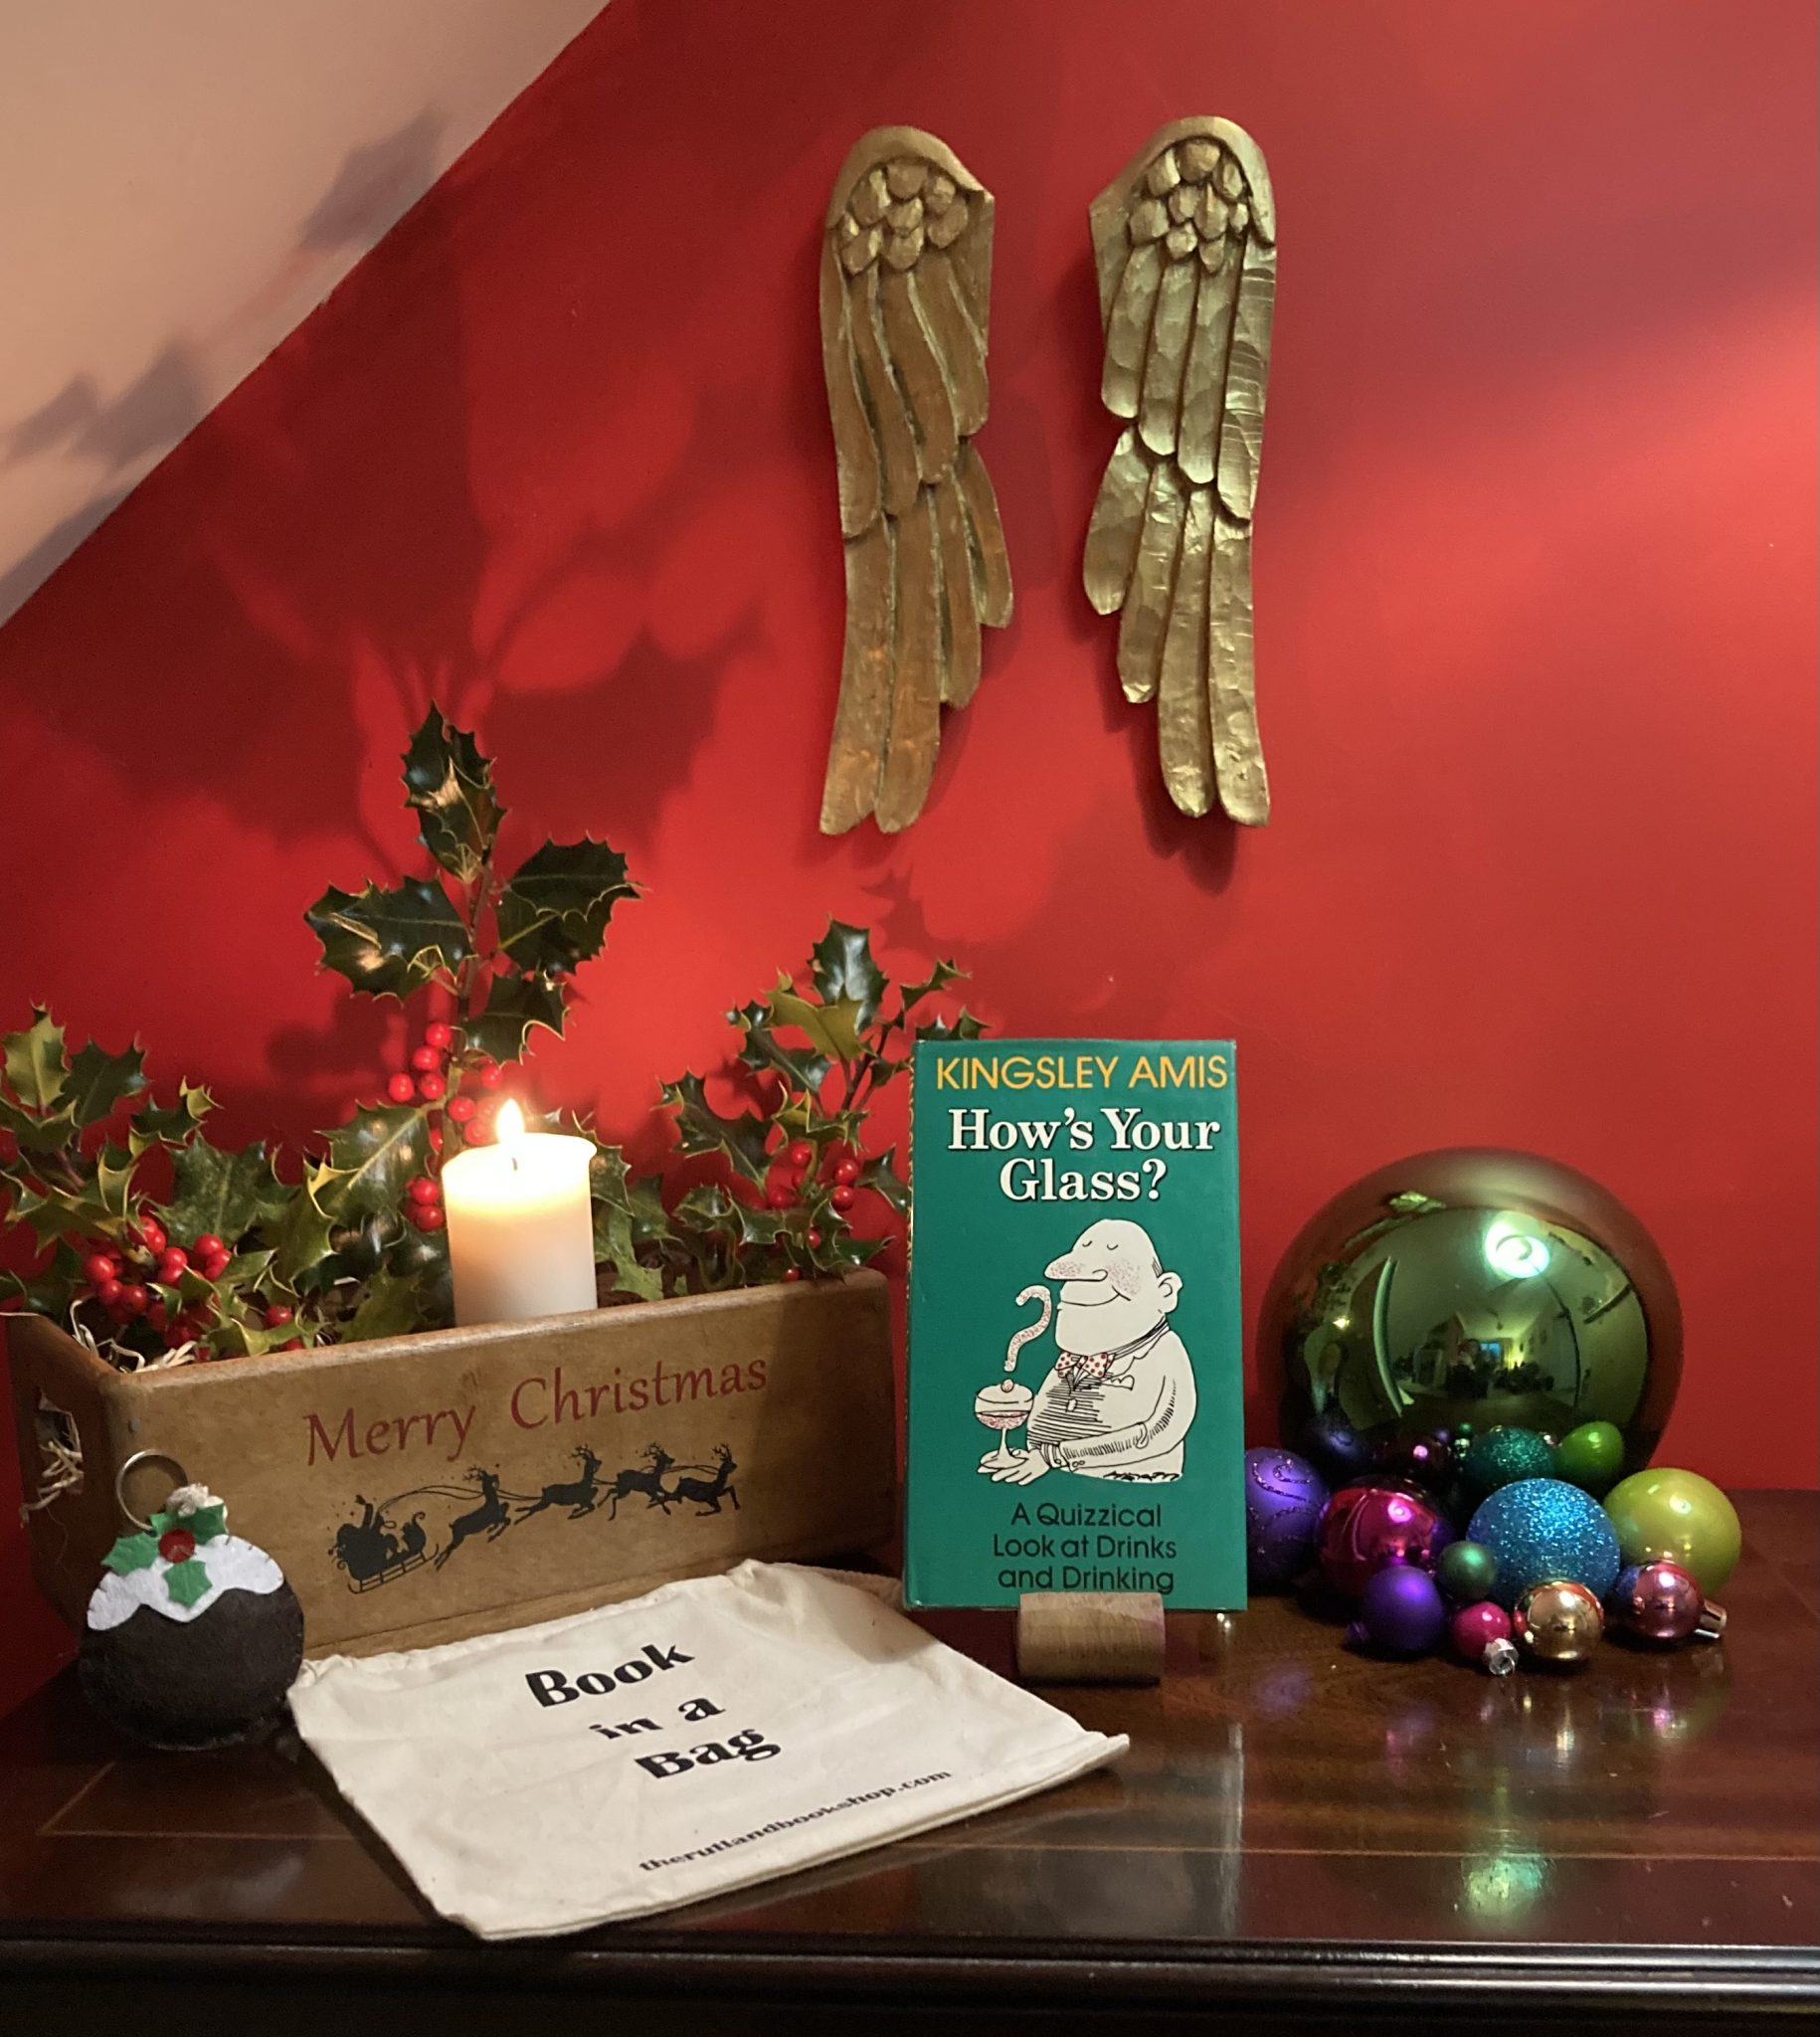 Christmas Book In A Bag: How's Your Glass?